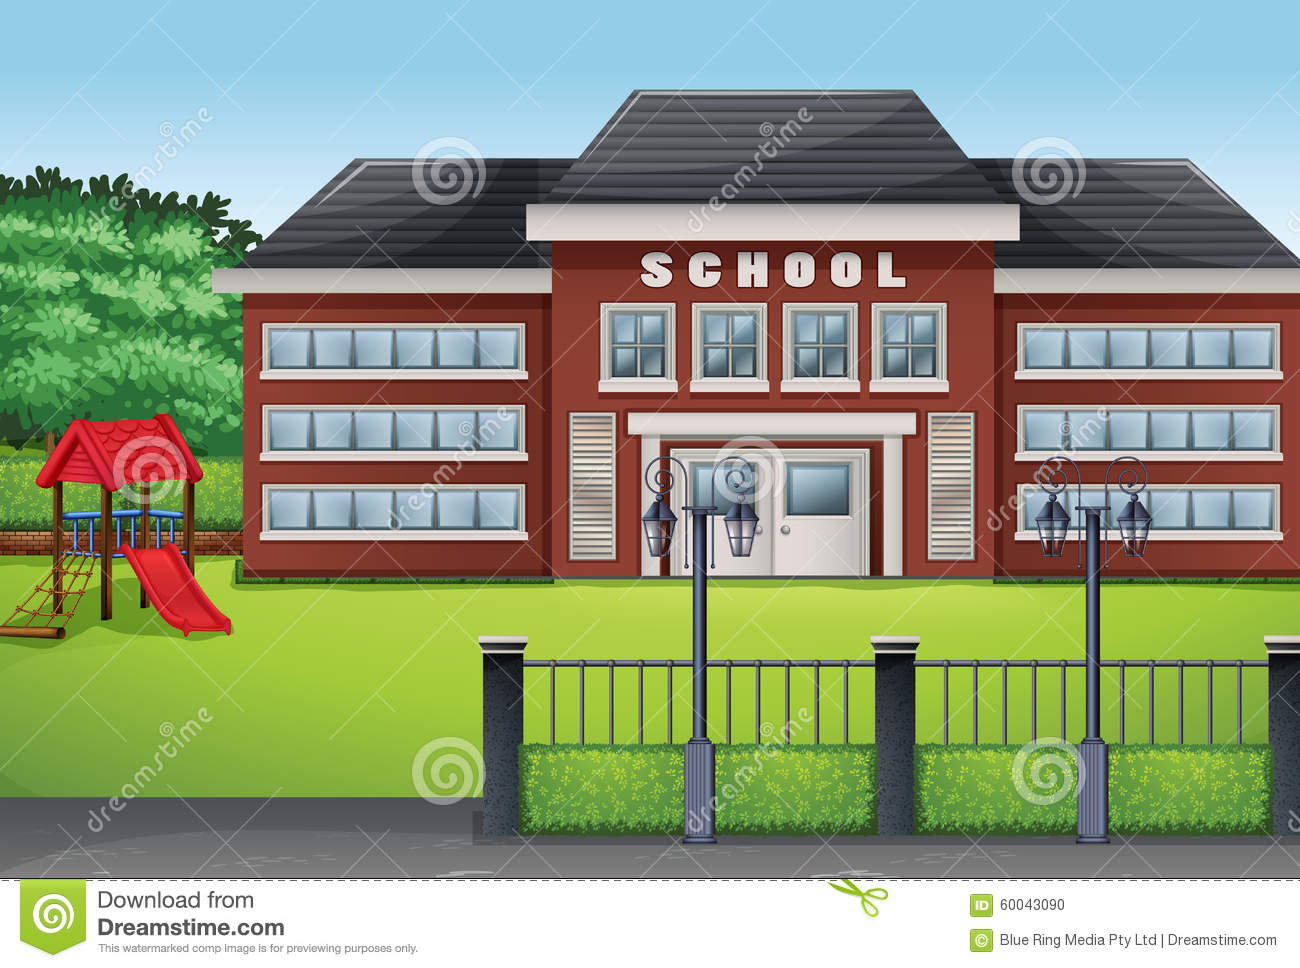 School Building In The Green Illustration 14292122.